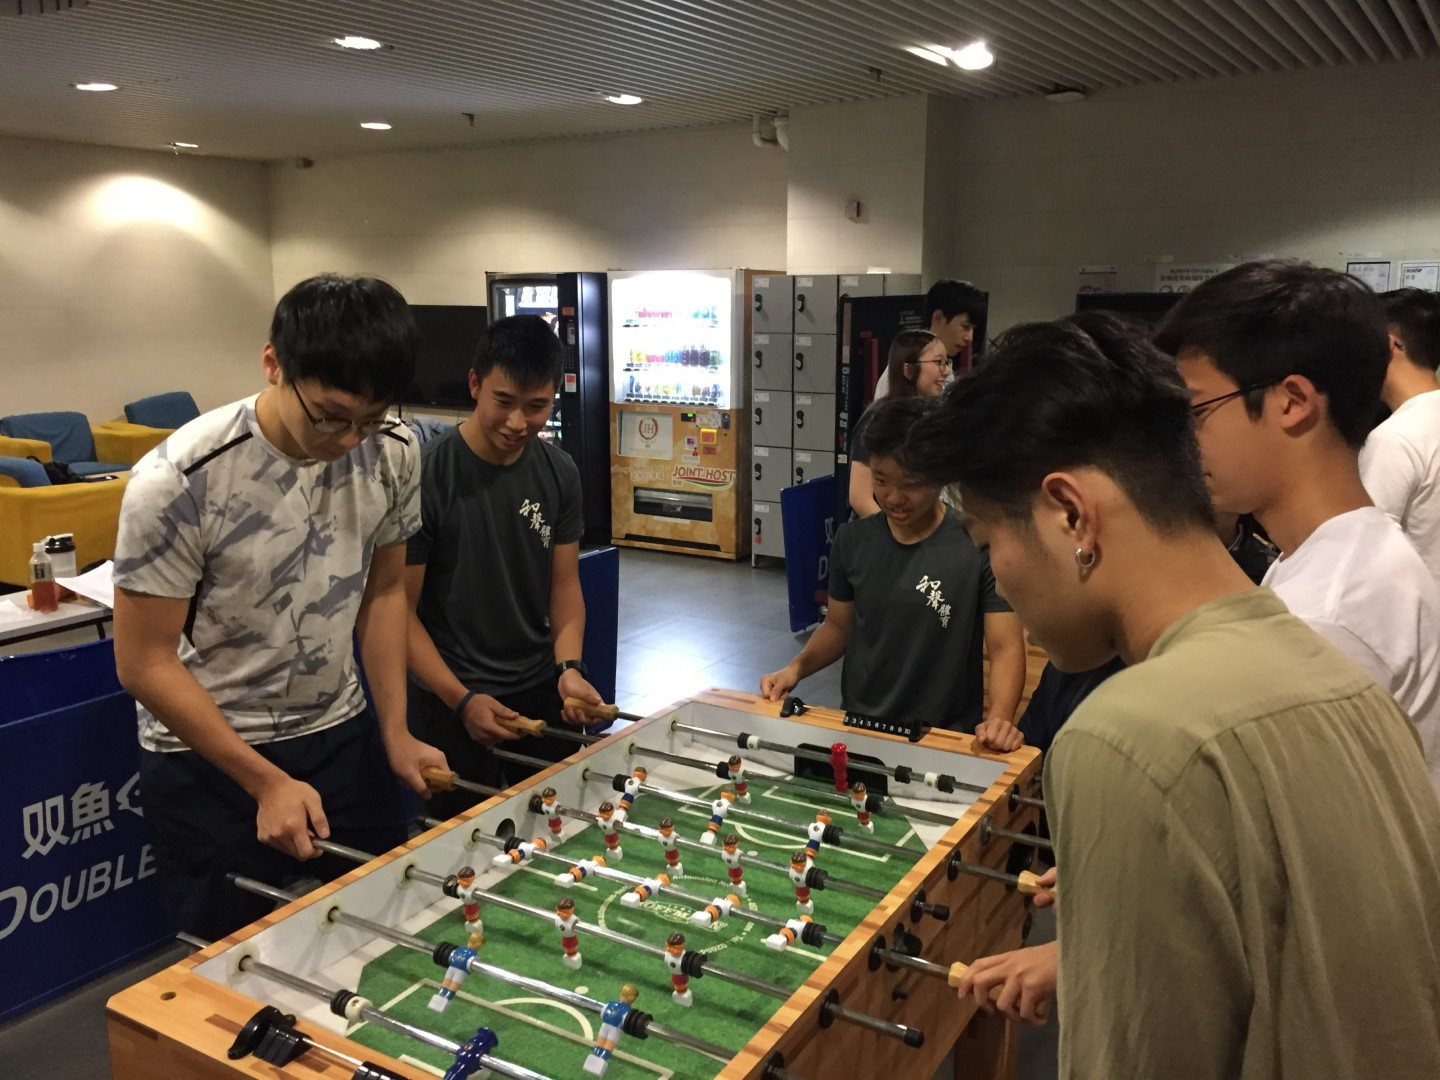 Foosball Competition 足球機競技